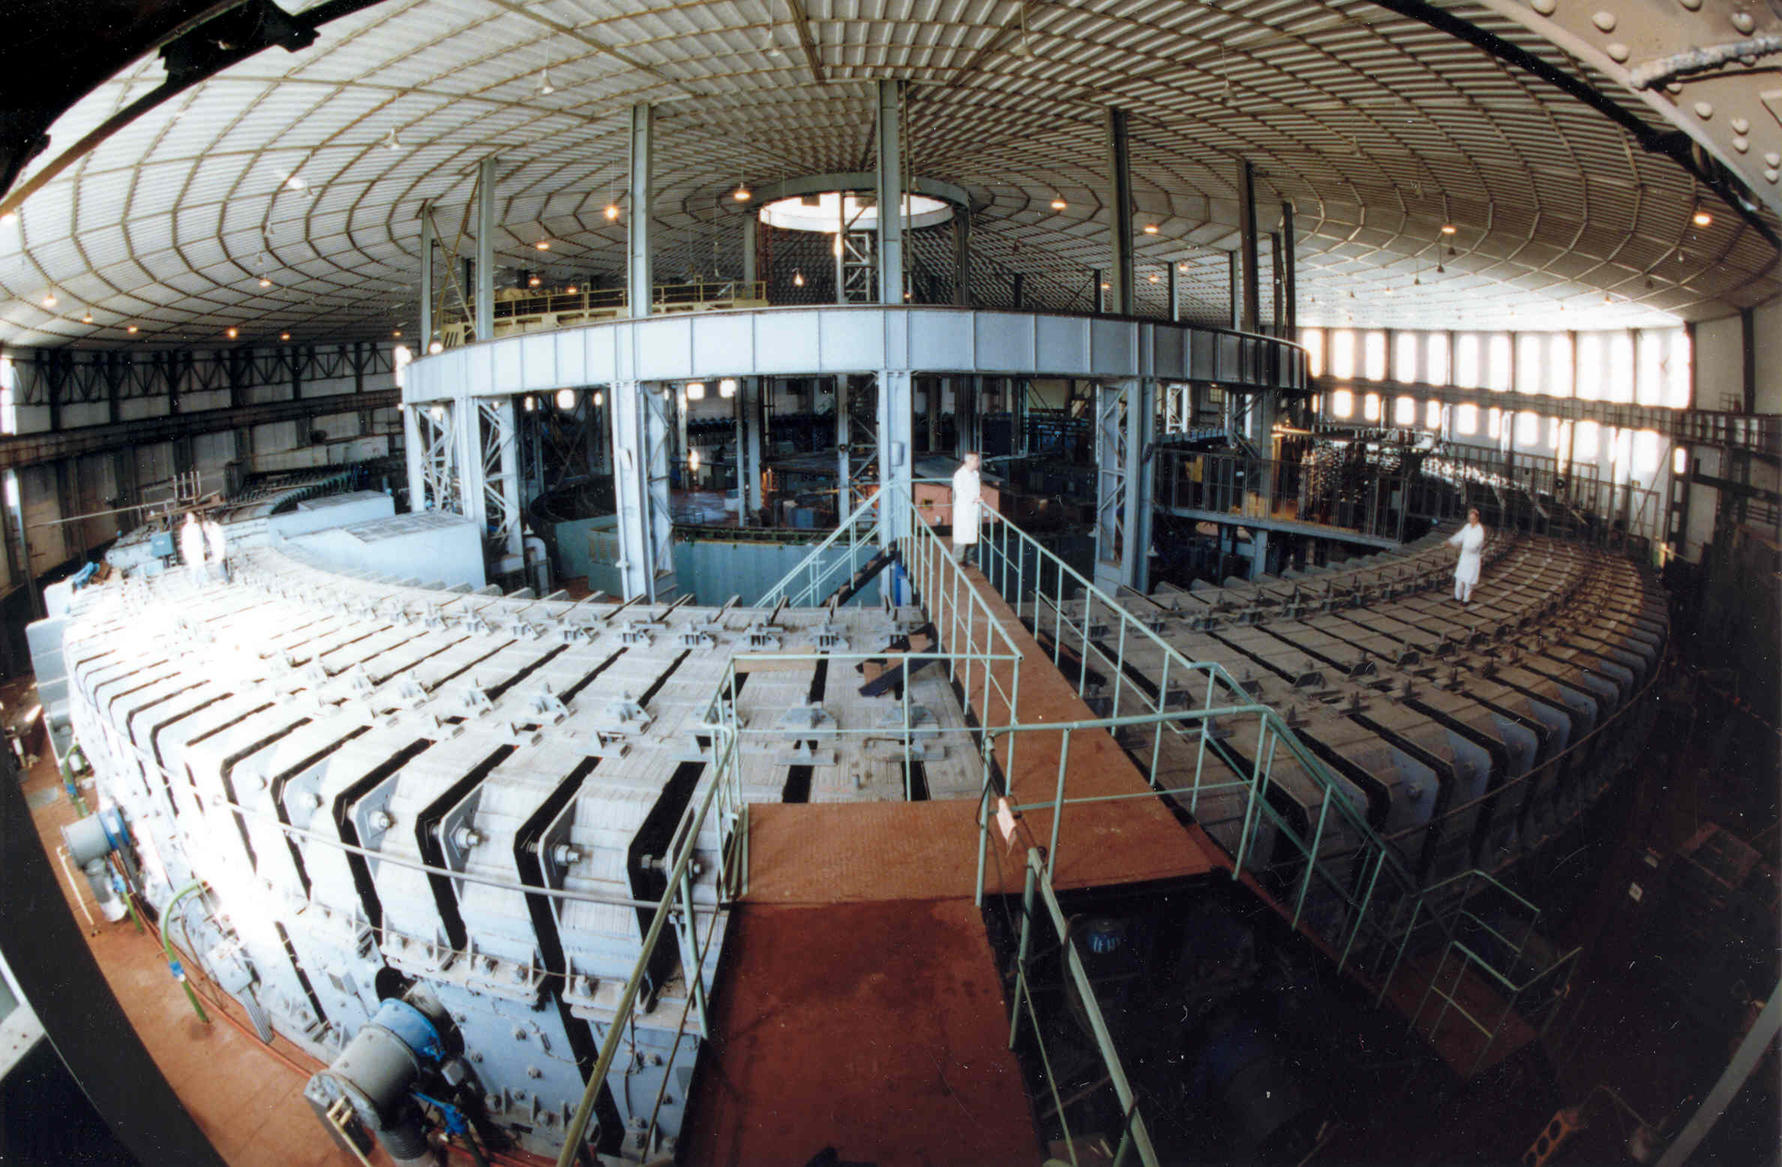 The synchrophasotron: a particle accelerator used to create superheavy nuclei at the Joint Institute for Nuclear Research in Russia.